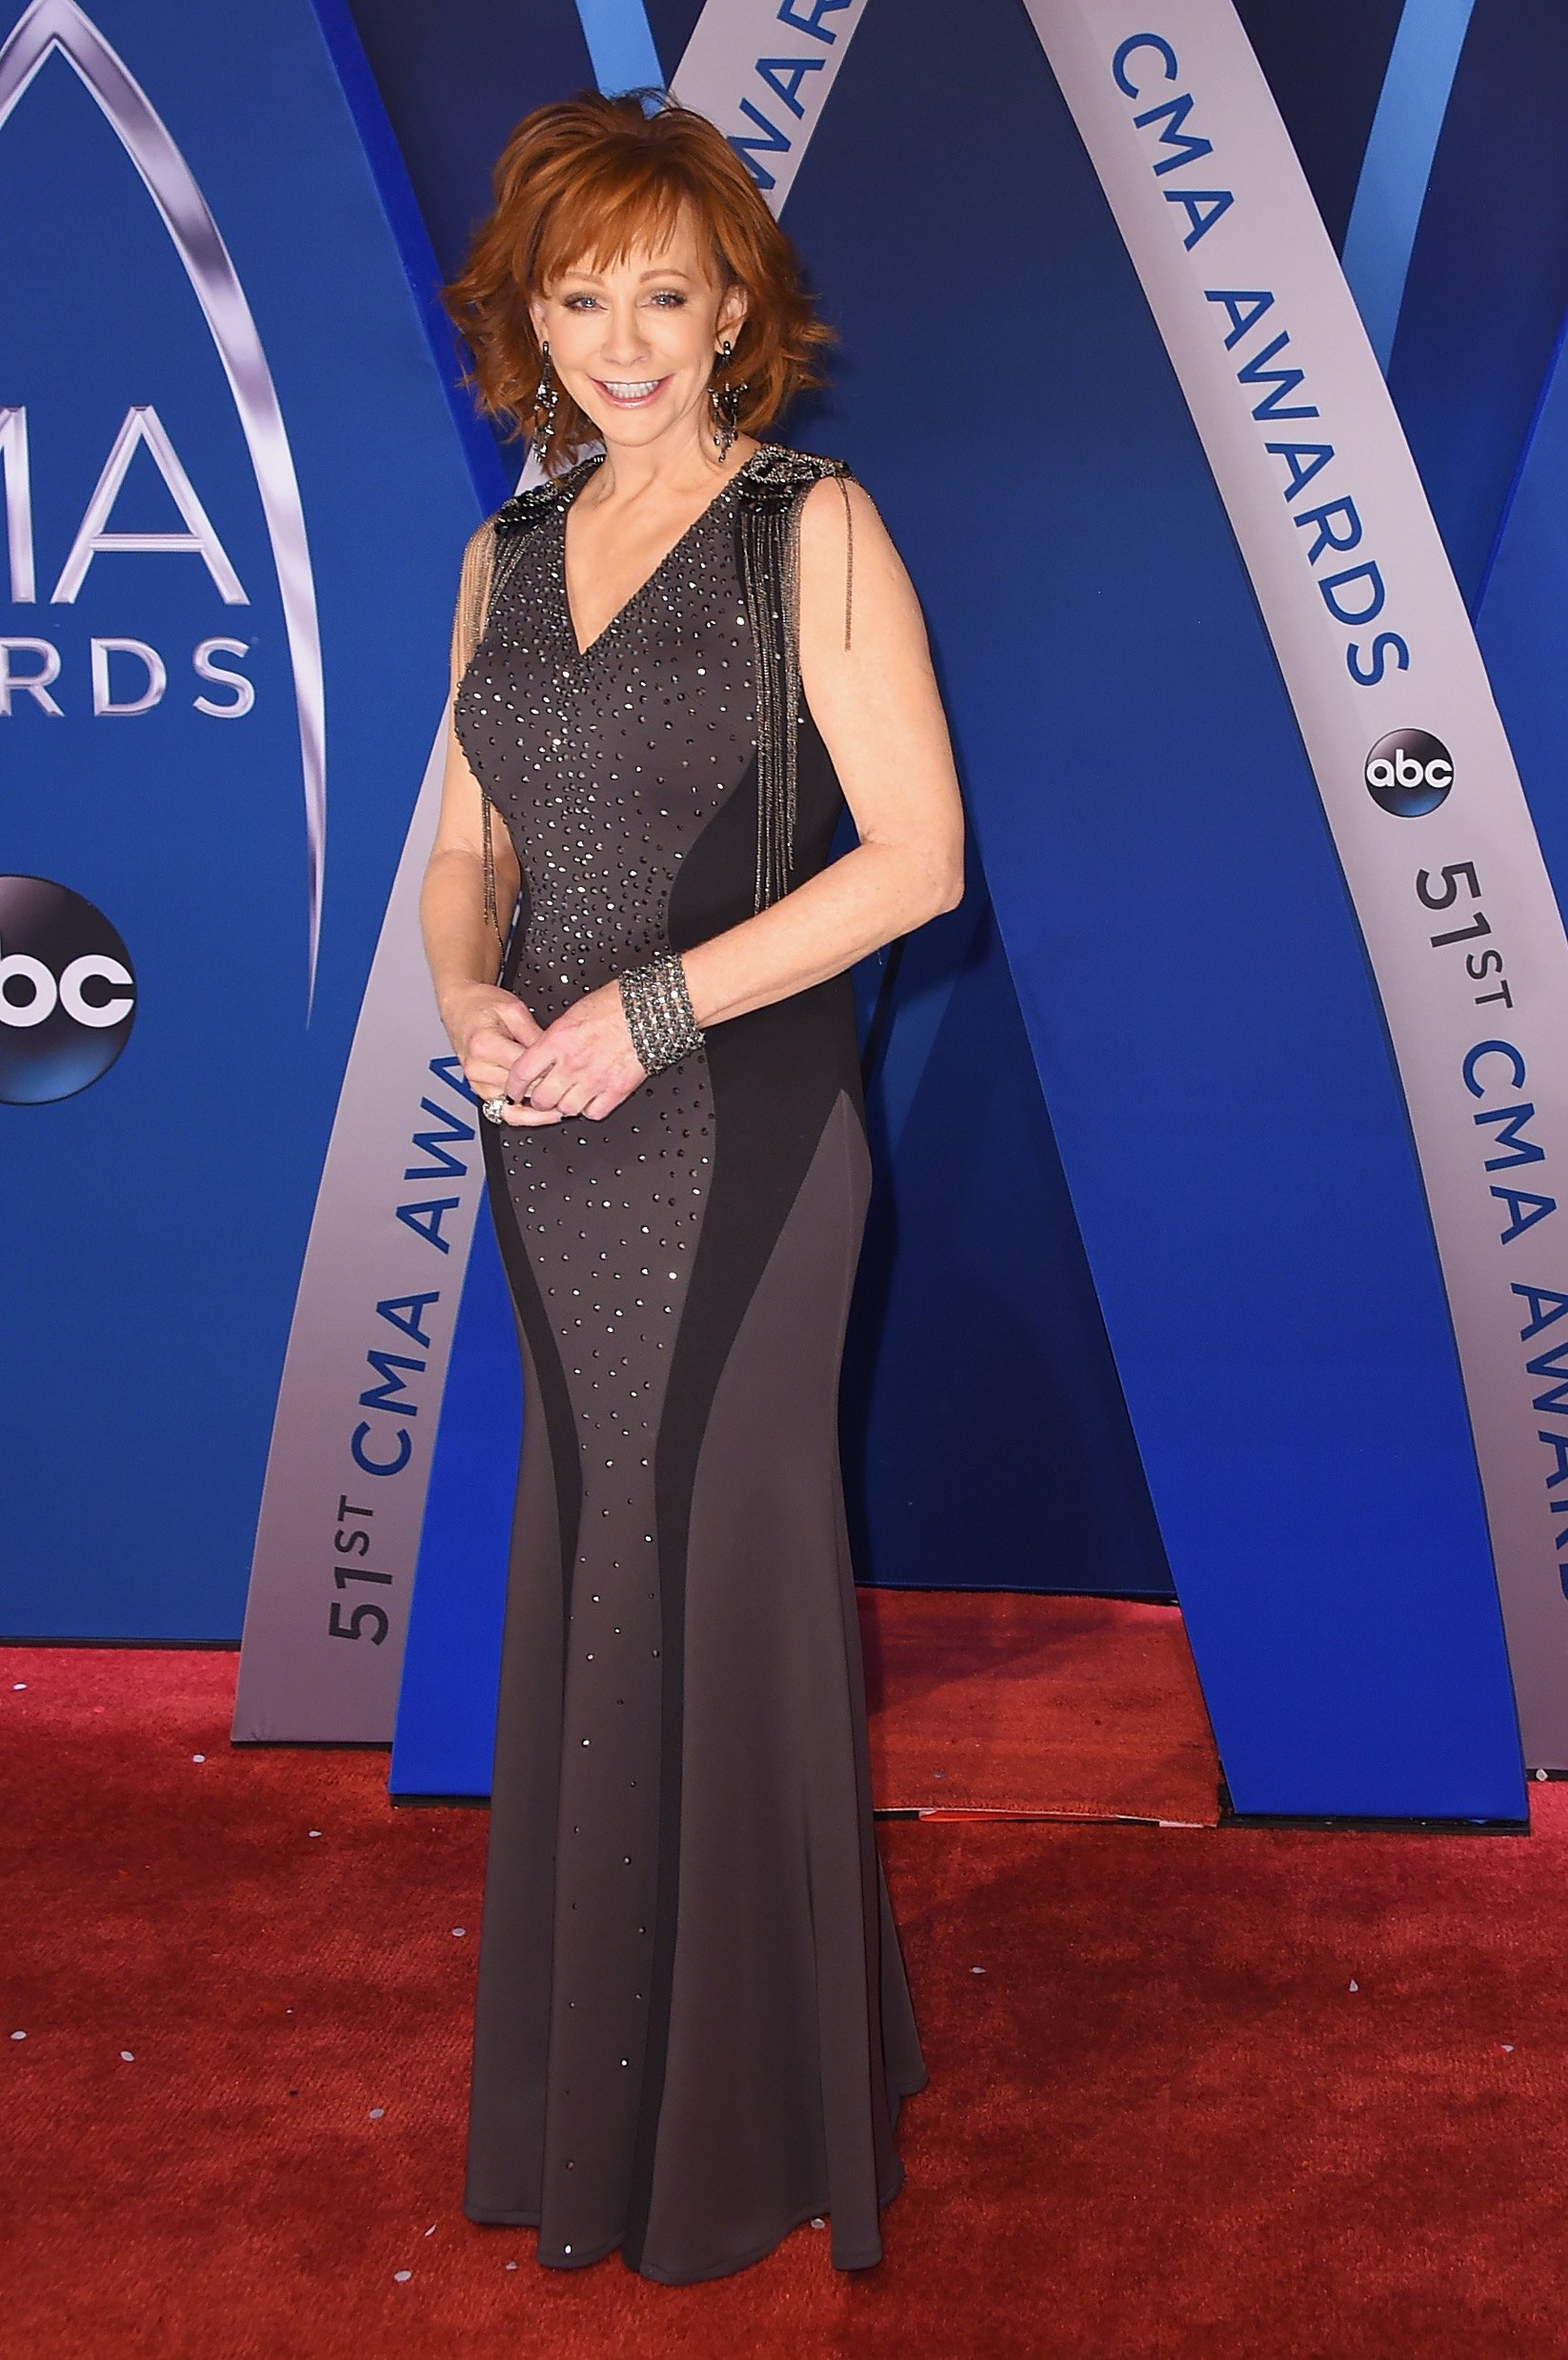 Reba McEntire at the 2018 CMA Awards | Photo: Getty Images